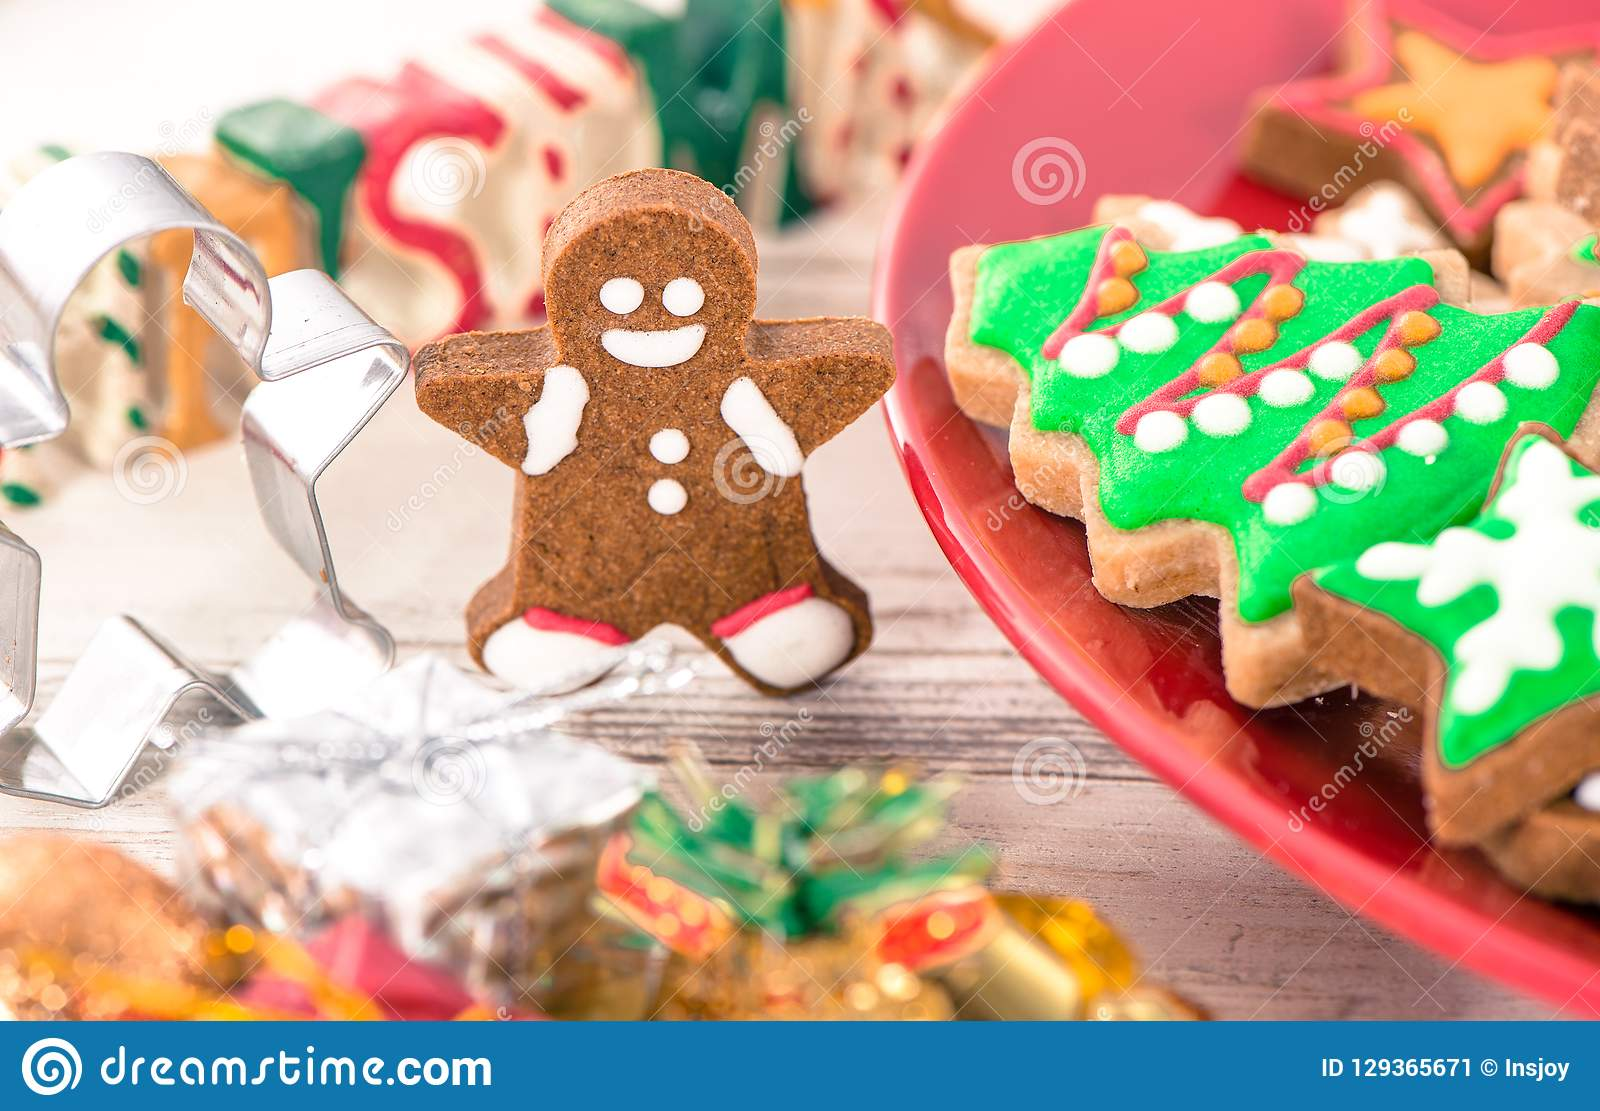 Tasty And Cute Baked Christmas Cookies Gingerbread Stock Image